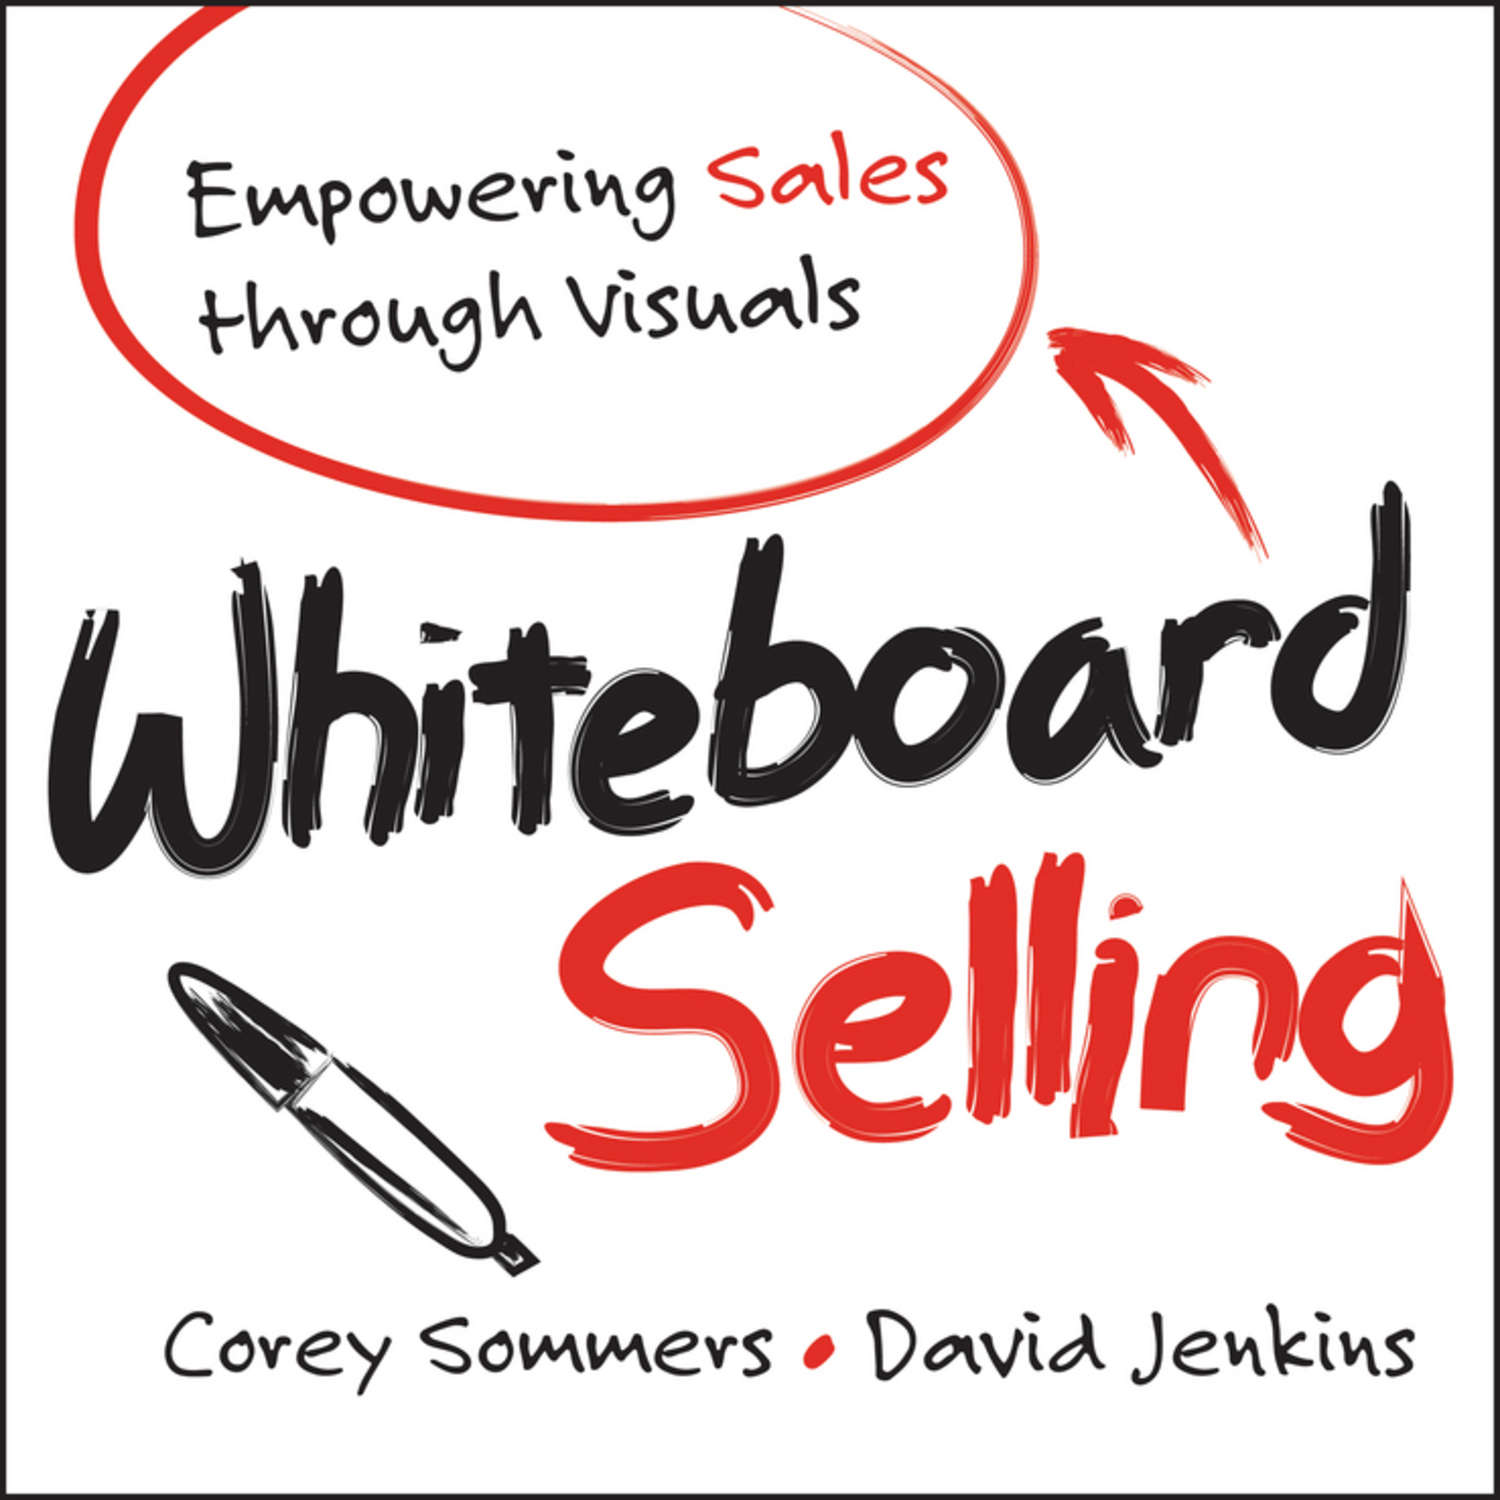 visuals and dramatization used in sales